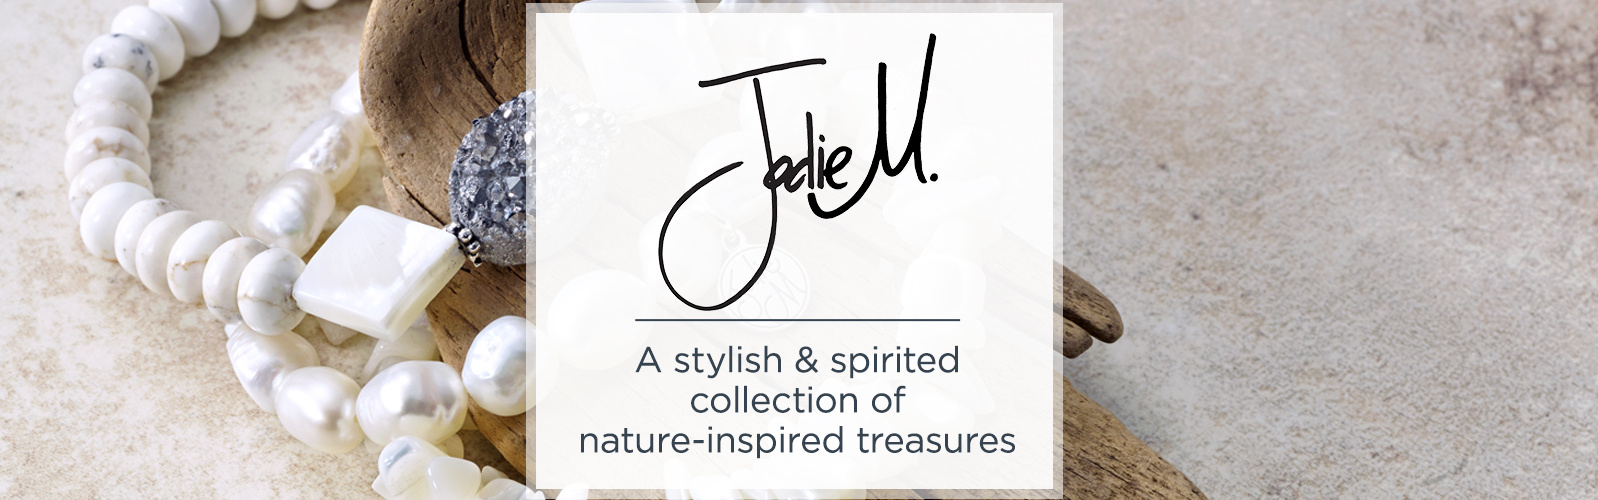 Jodie M. A stylish & spirited collection of nature-inspired treasures